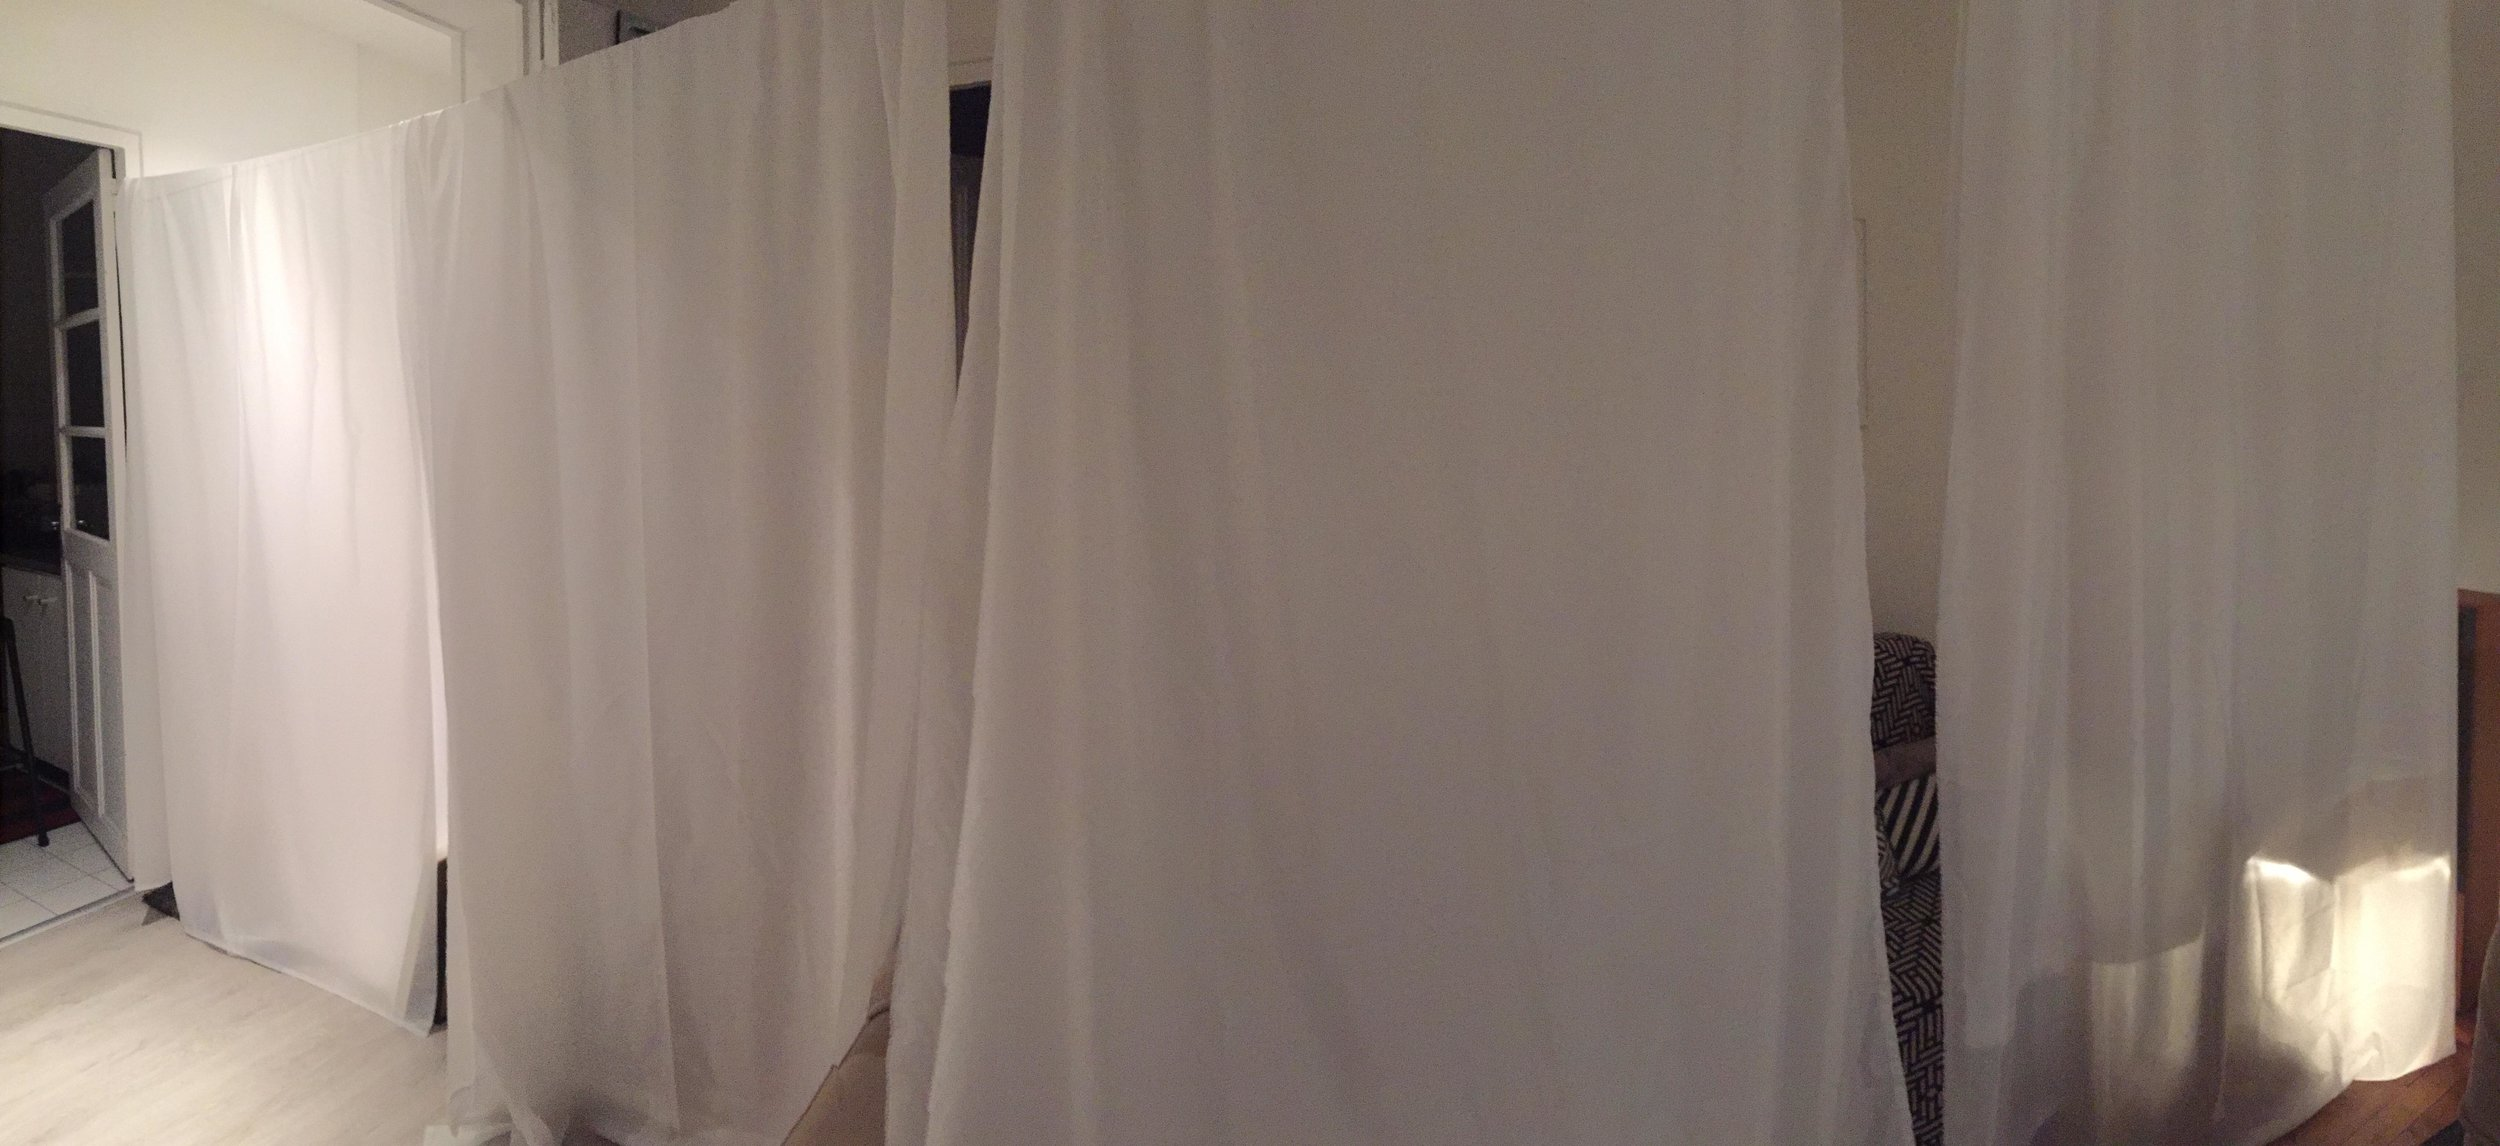 #curtain #test